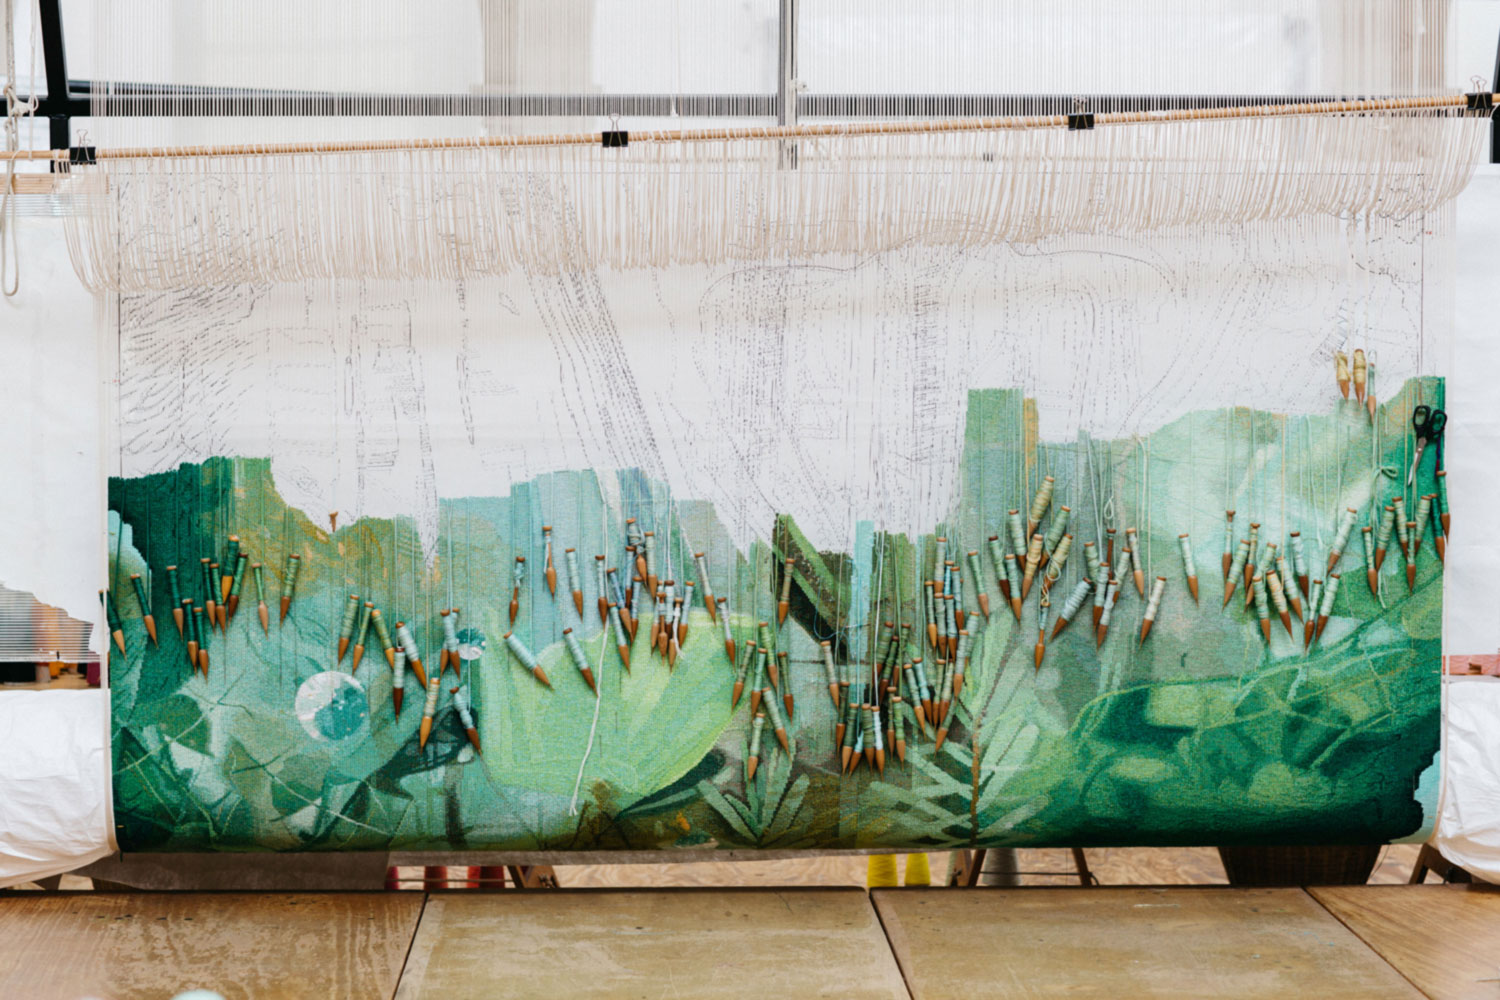 Tapestry in progress: 'Hear the Plant Song' 2020, Janet Laurence, woven by Chris Cochius, Amy Cornall, Cheryl Thornton, Sue Batten, wool, cotton, 1.56 x 2.7m. Photo: Marie-Luise Skibbe.